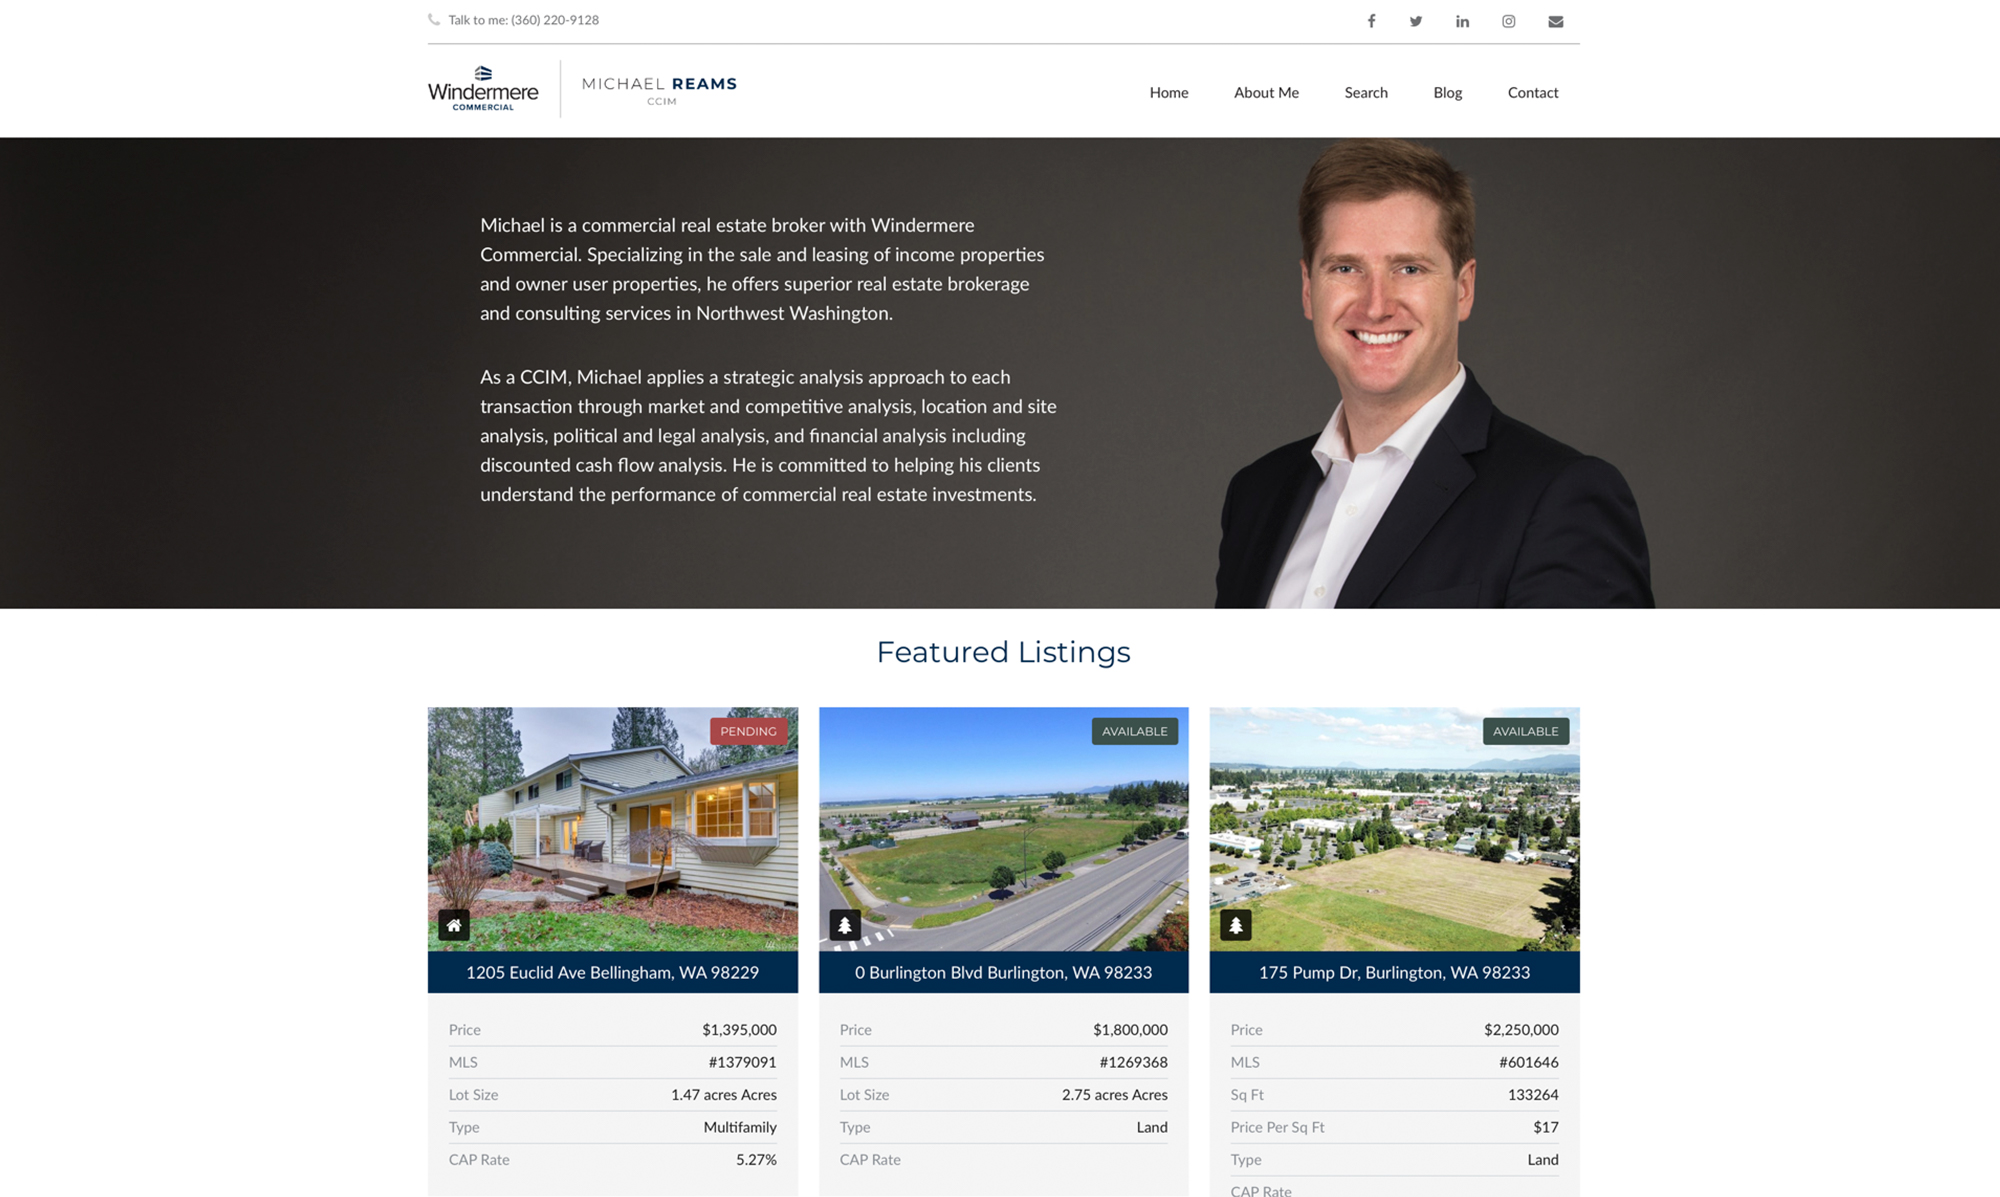 Michael Reams Real Estate Website Design & Development